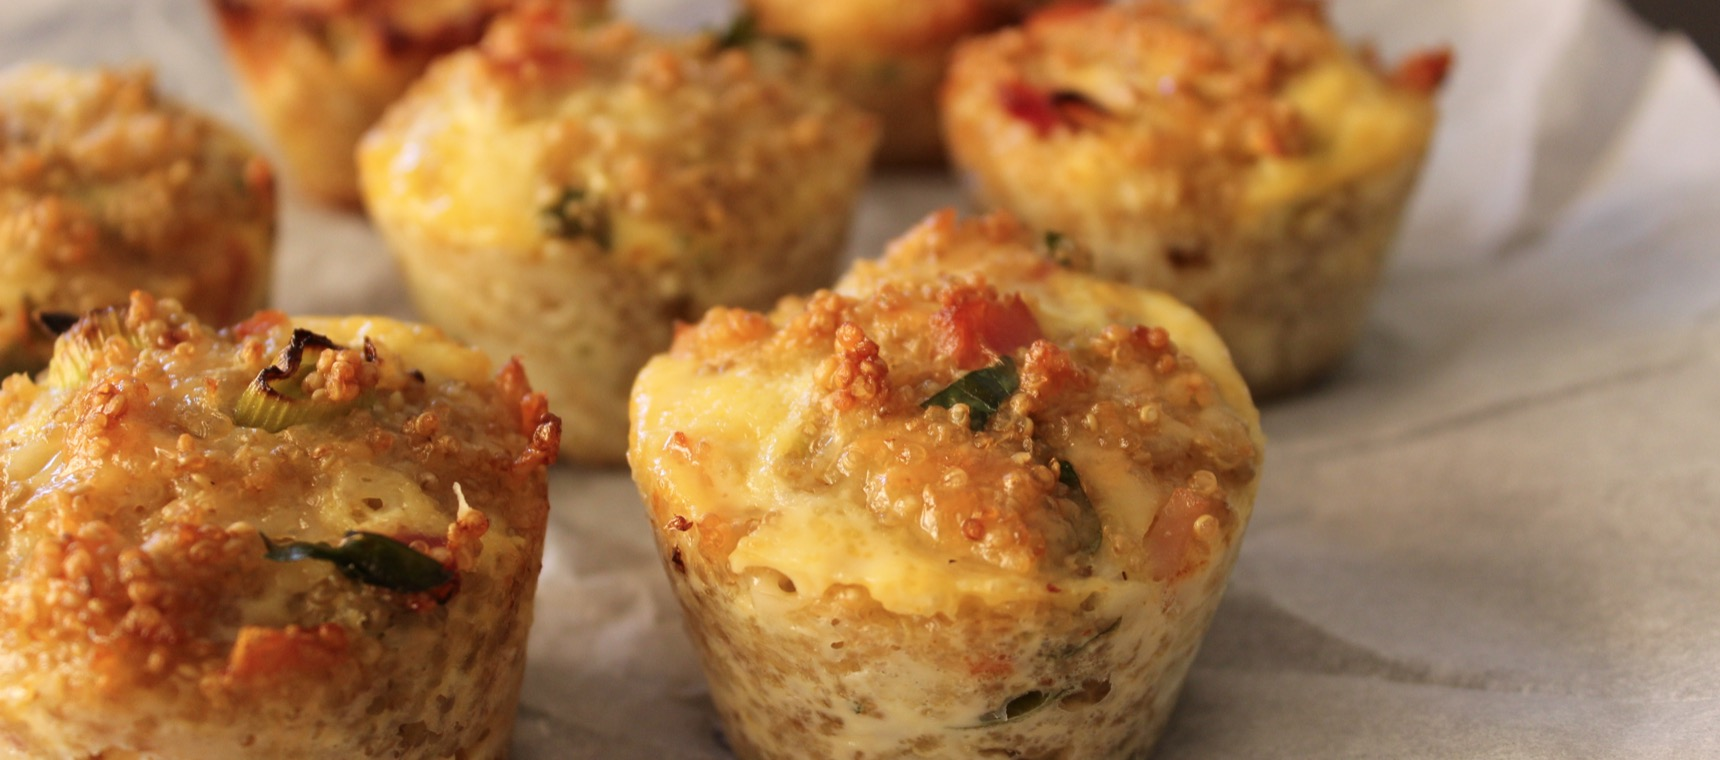 Bacon and Egg Quinoa Bites